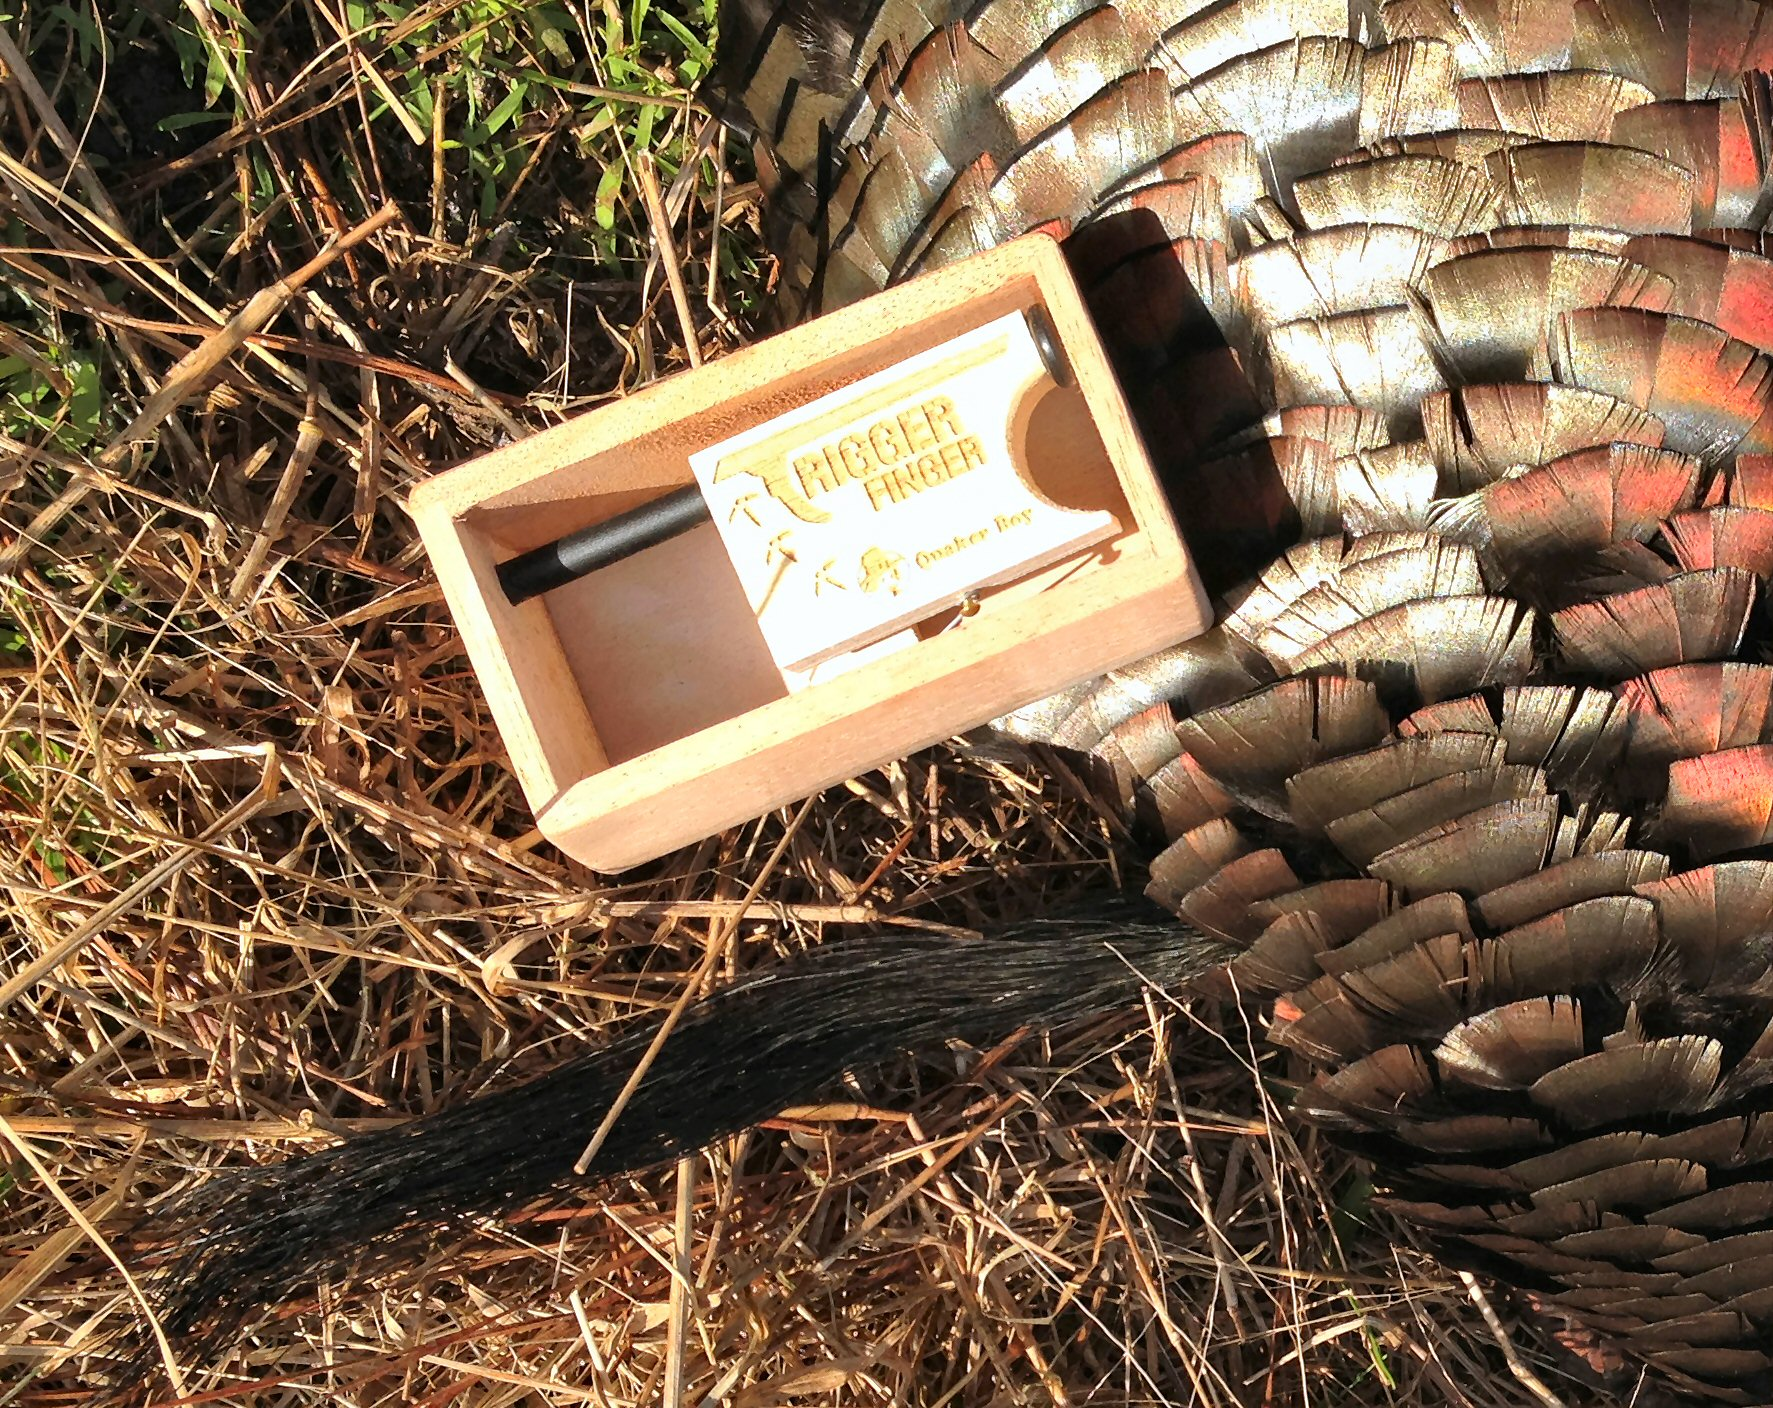 Review: Quaker Boy Trigger Finger Turkey Call